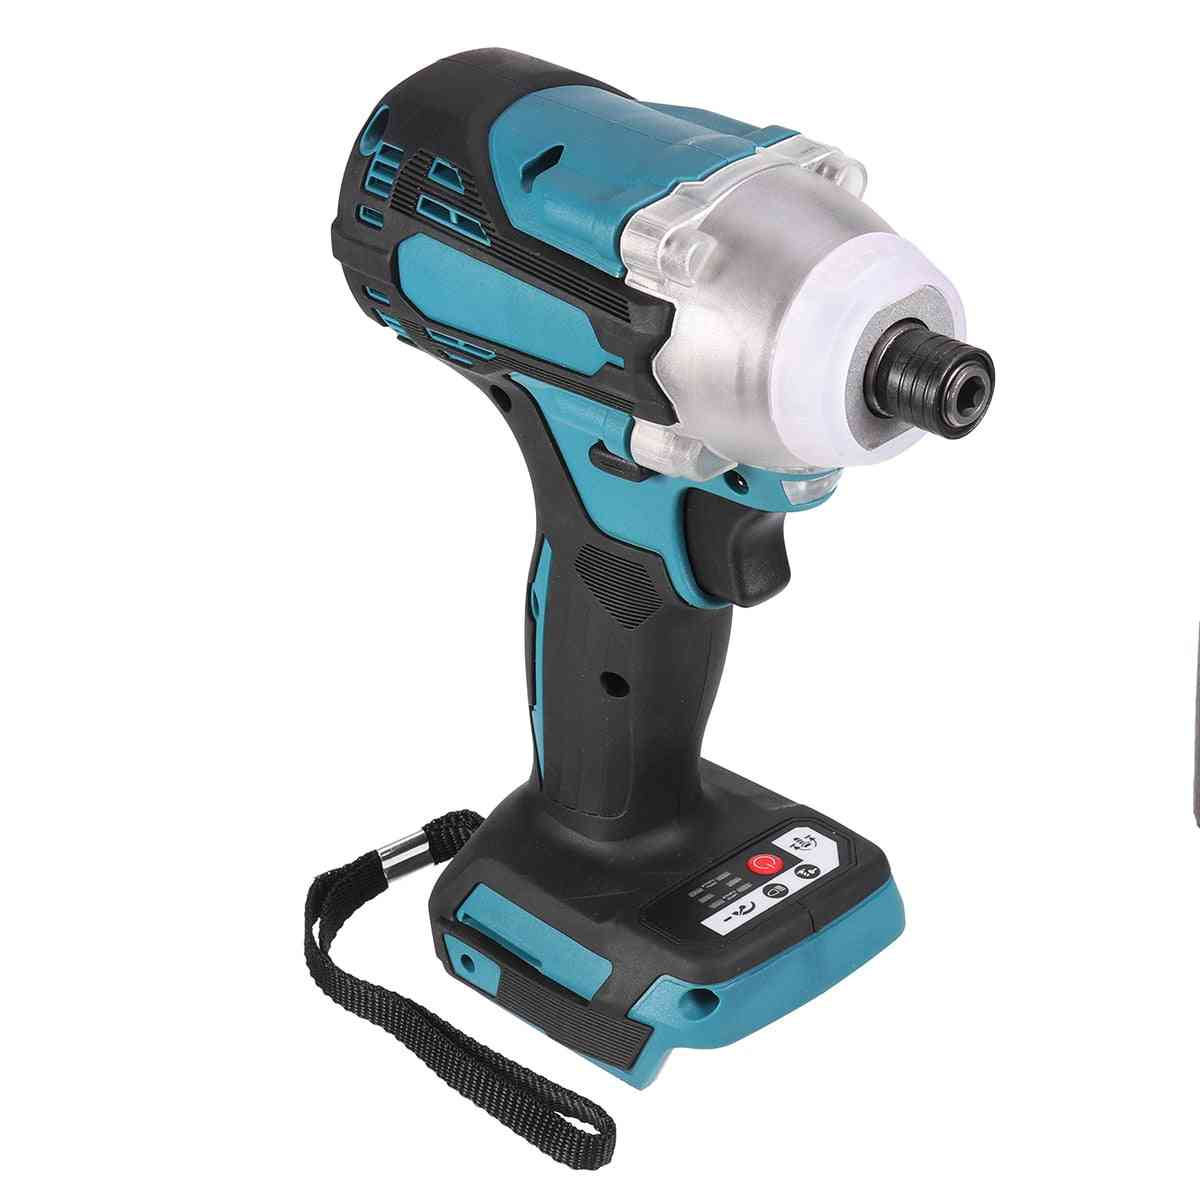 Li-ion Brushless Cordless, Electric Screwdriver, Electric Wrench